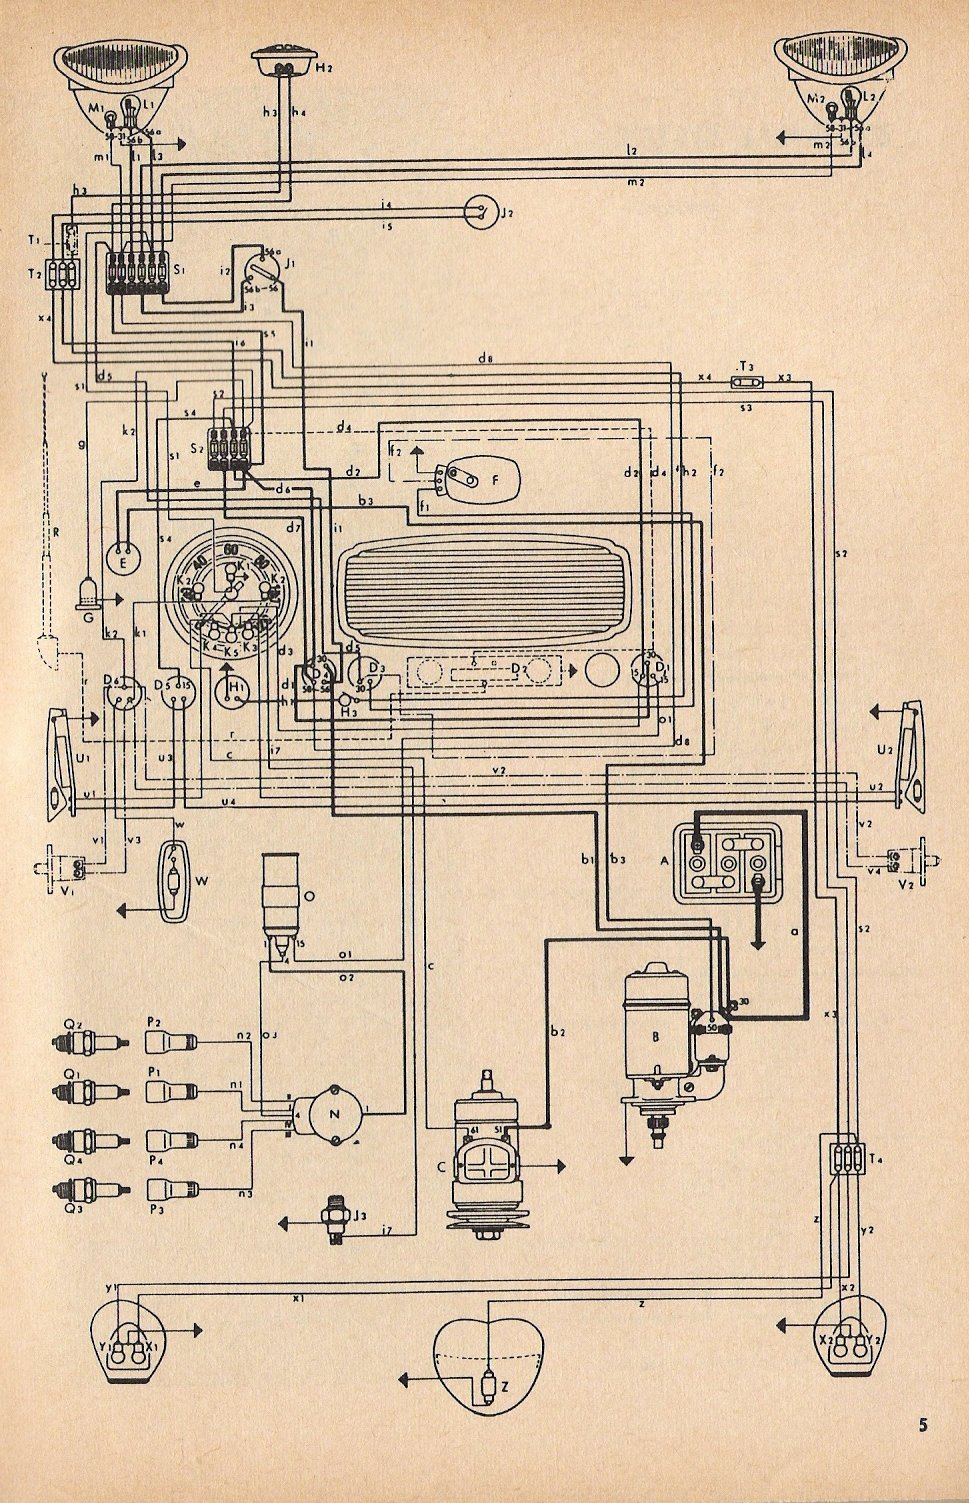 Type 1 Wiring Diagrams 1968 Nova Diagram Free Picture Schematic